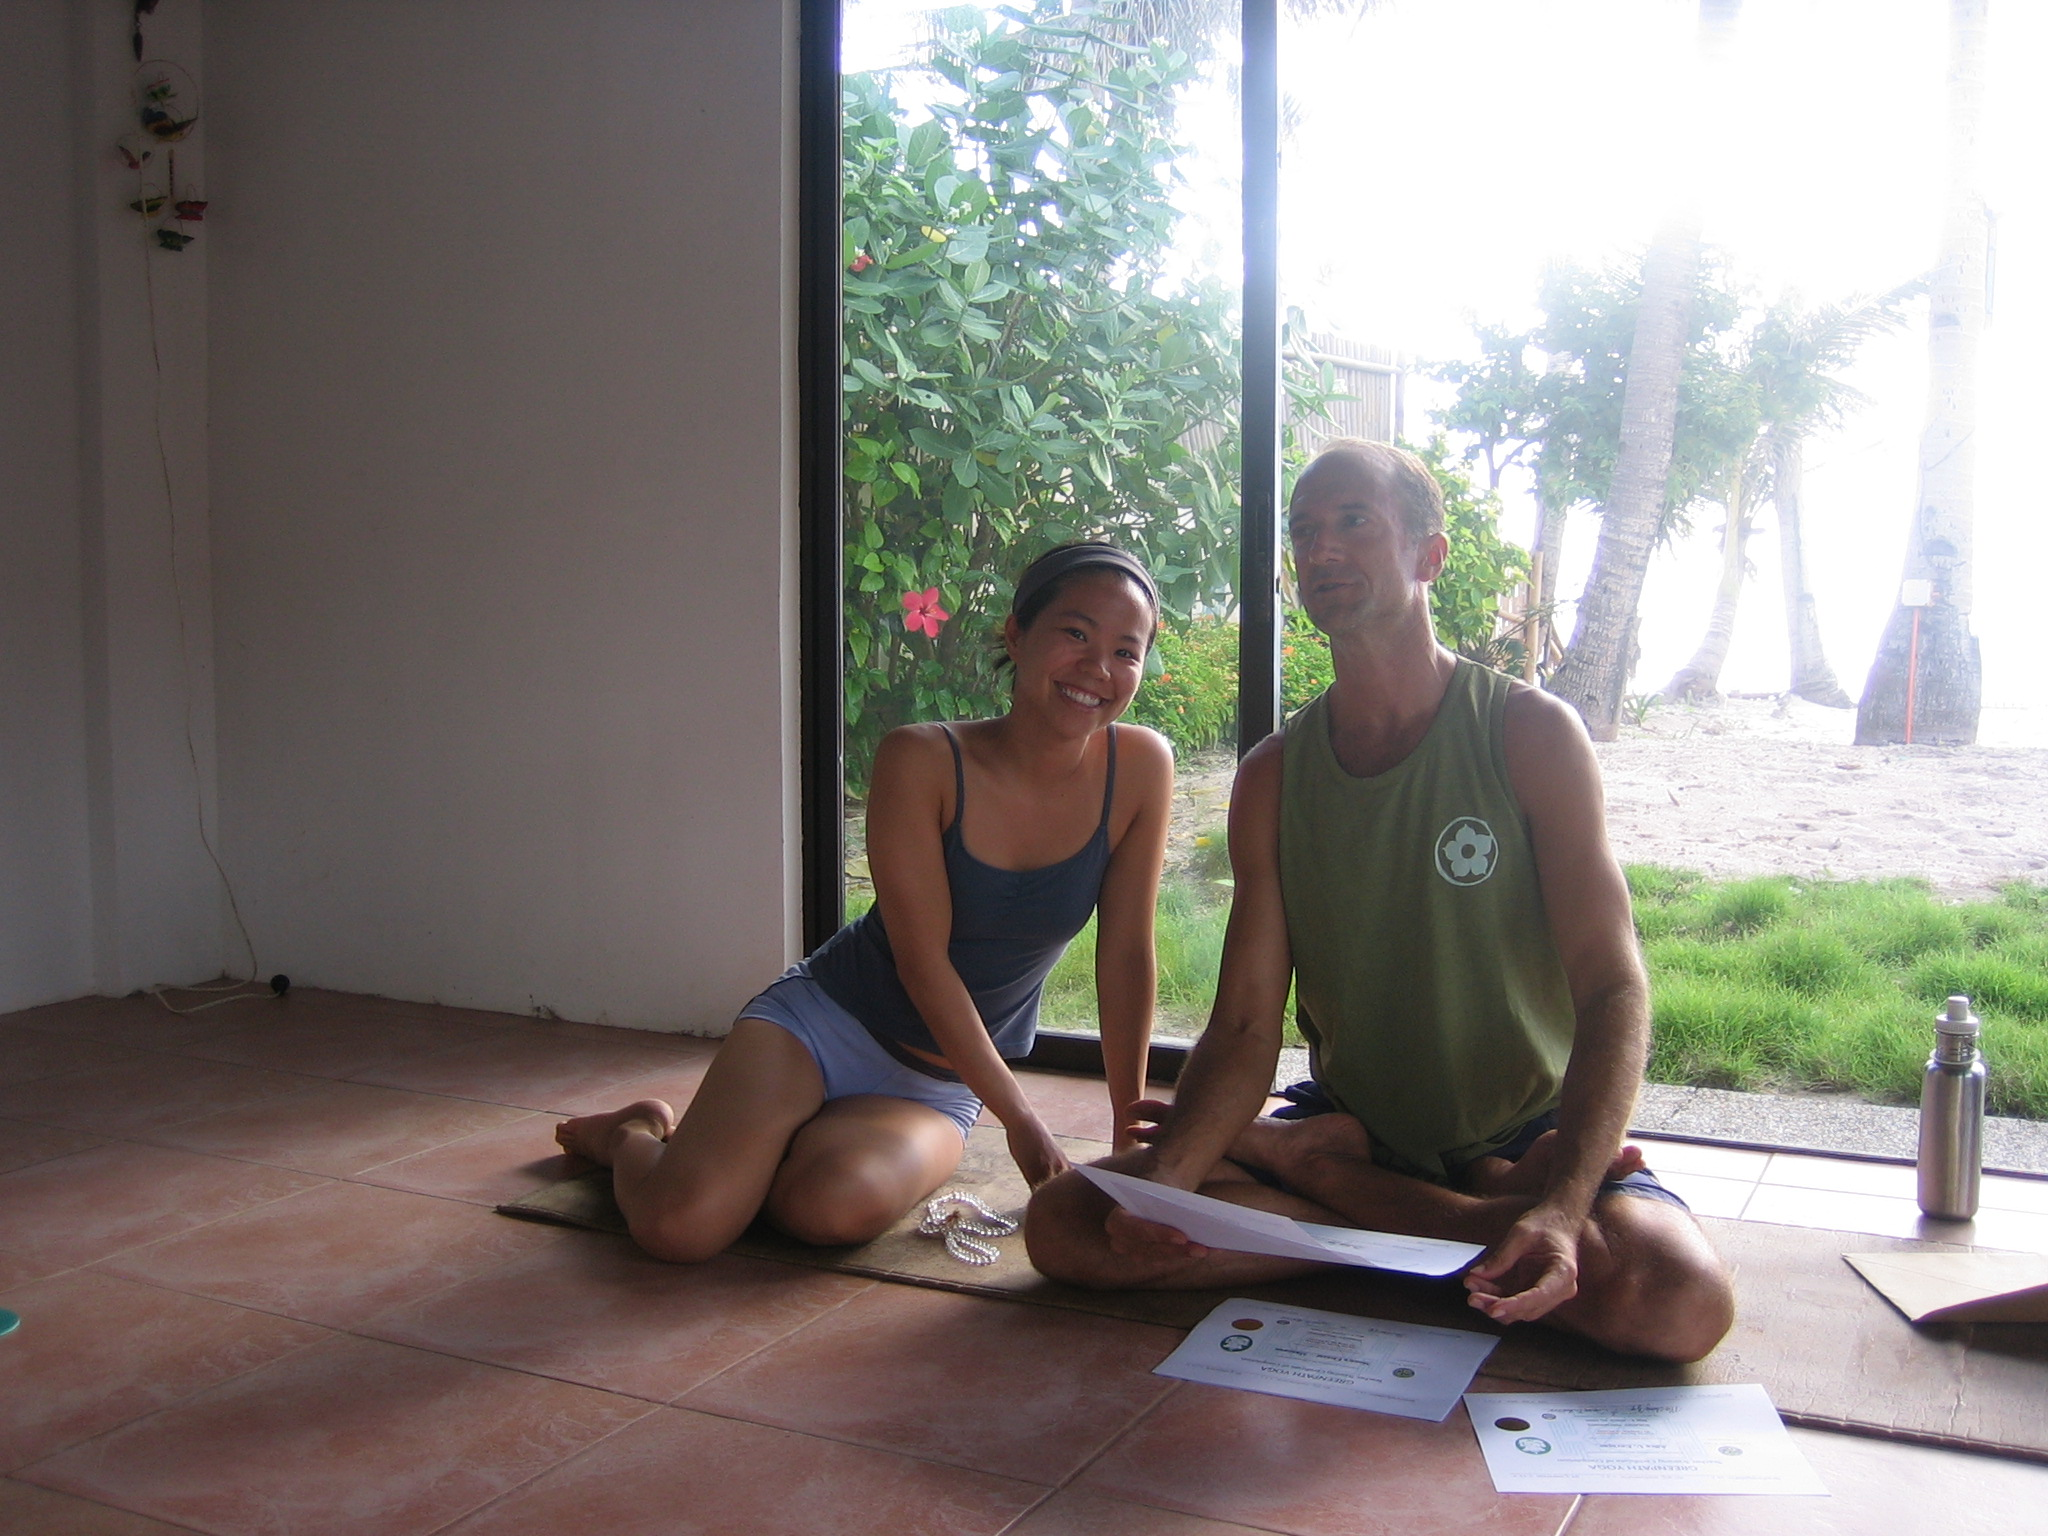 - I studied under Clayton Horton and Mo Ching Yip of Greenpath Yoga in Boracay for my 200 hour Yoga Alliance Teacher Training Certificate.